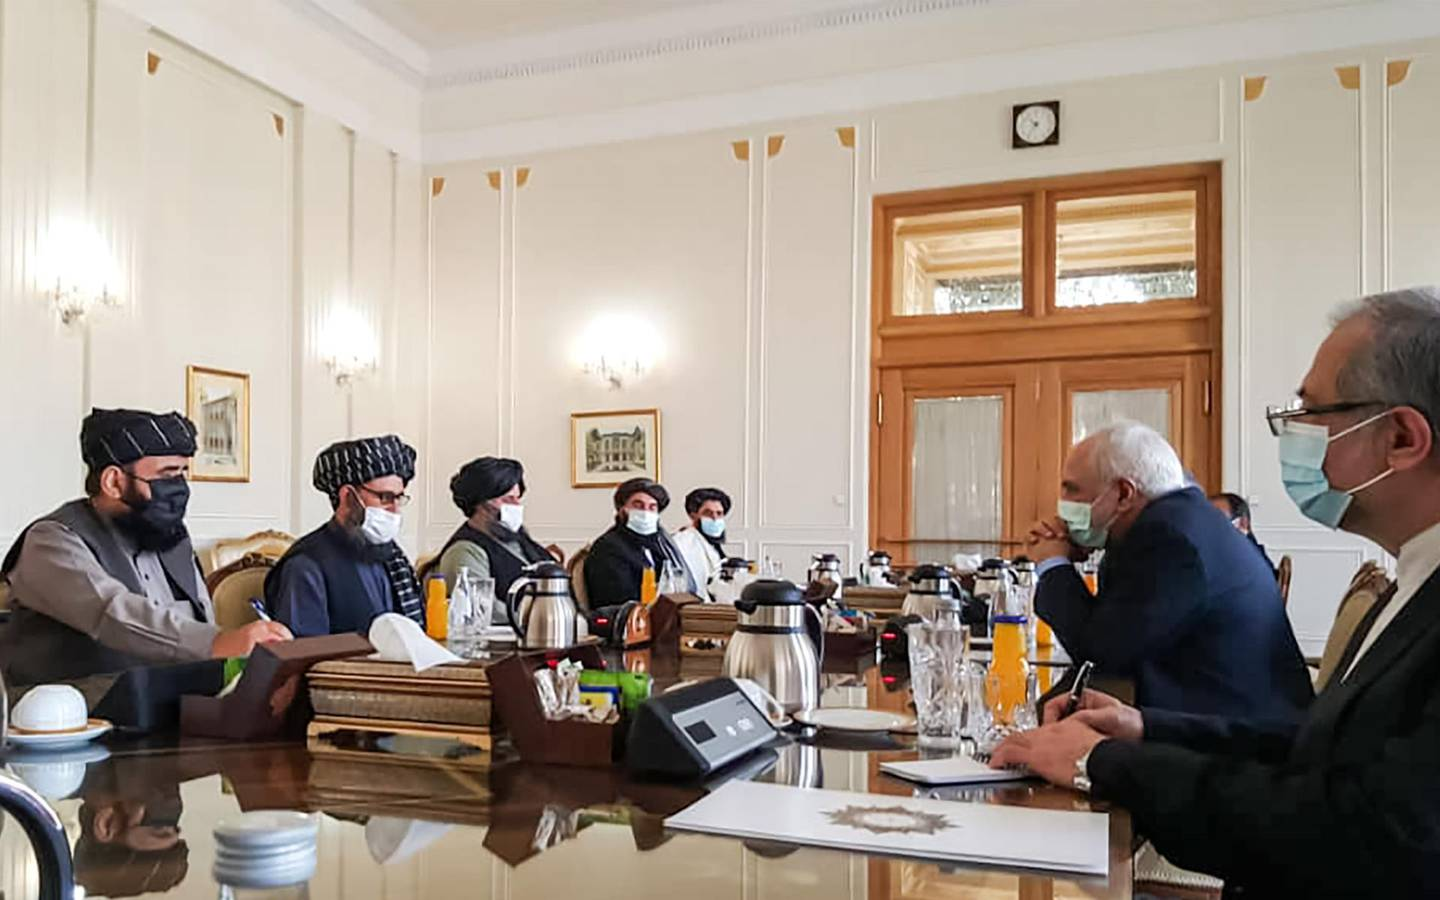 """A picture obtained by AFP from the Iranian news agency Tasnim on January 31, 2021, shows  Iran' Foreign Minister Mohammad Javad Zarif (2nd-R) meeting with Mullah Abdul Ghani Baradar (2nd-L) of the Taliban in Tehran. Iran's Foreign Minister Mohammad Javad Zarif called for the formation of an """"all-inclusive"""" Afghan government during a meeting with a Taliban delegation in Tehran. A delegation from the movement headed by its co-founder Mullah Abdul Ghani Baradar arrived in Iran on January 26 to exchange """"views on the peace process in Afghanistan"""" at the invitation of the ministry. / AFP / TASNIM NEWS / -"""